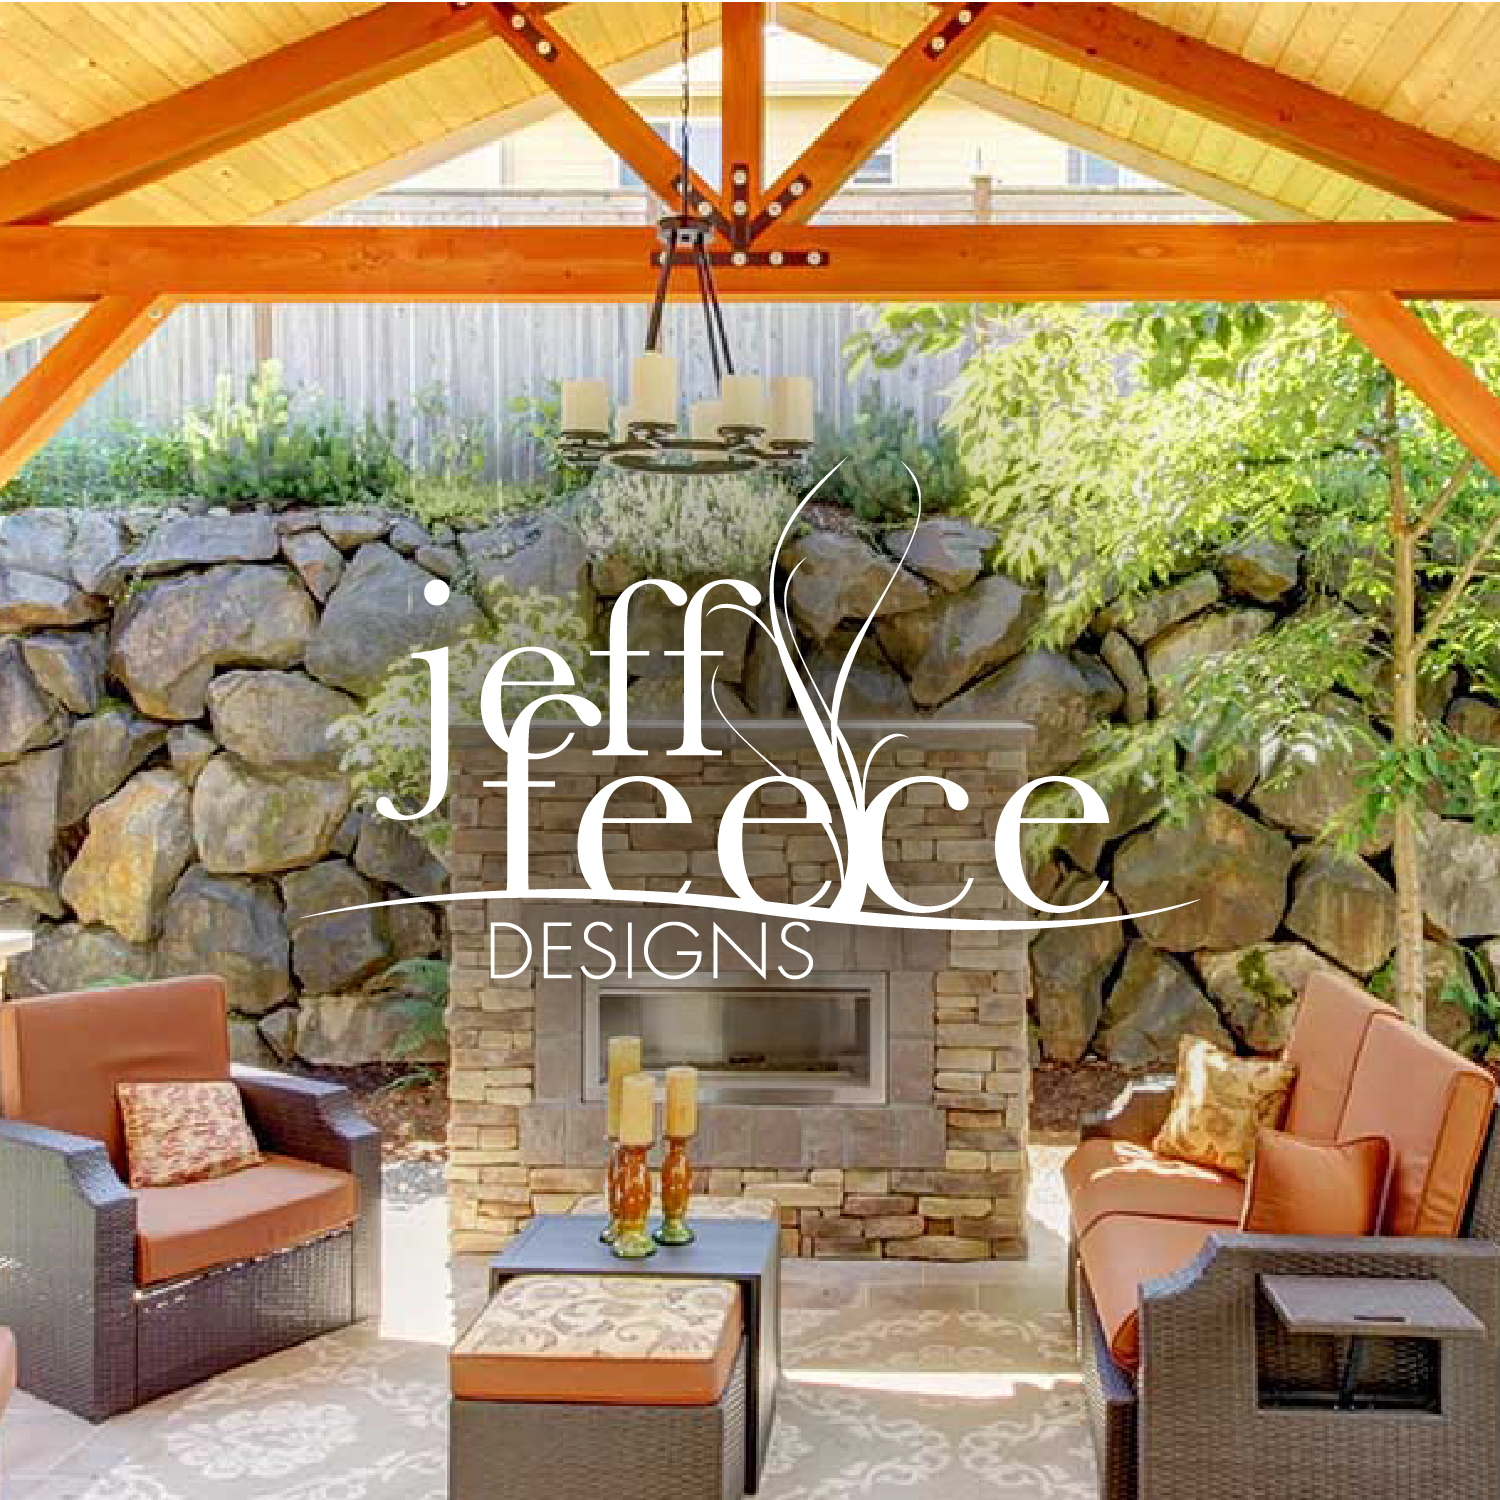 JEFF FEECE DESIGN    Marketing Strategy, Brand Identity, Website Design, Graphic Design, Print Management, Direct Mail & Local Search Engine Optimization    SEE THE WORK